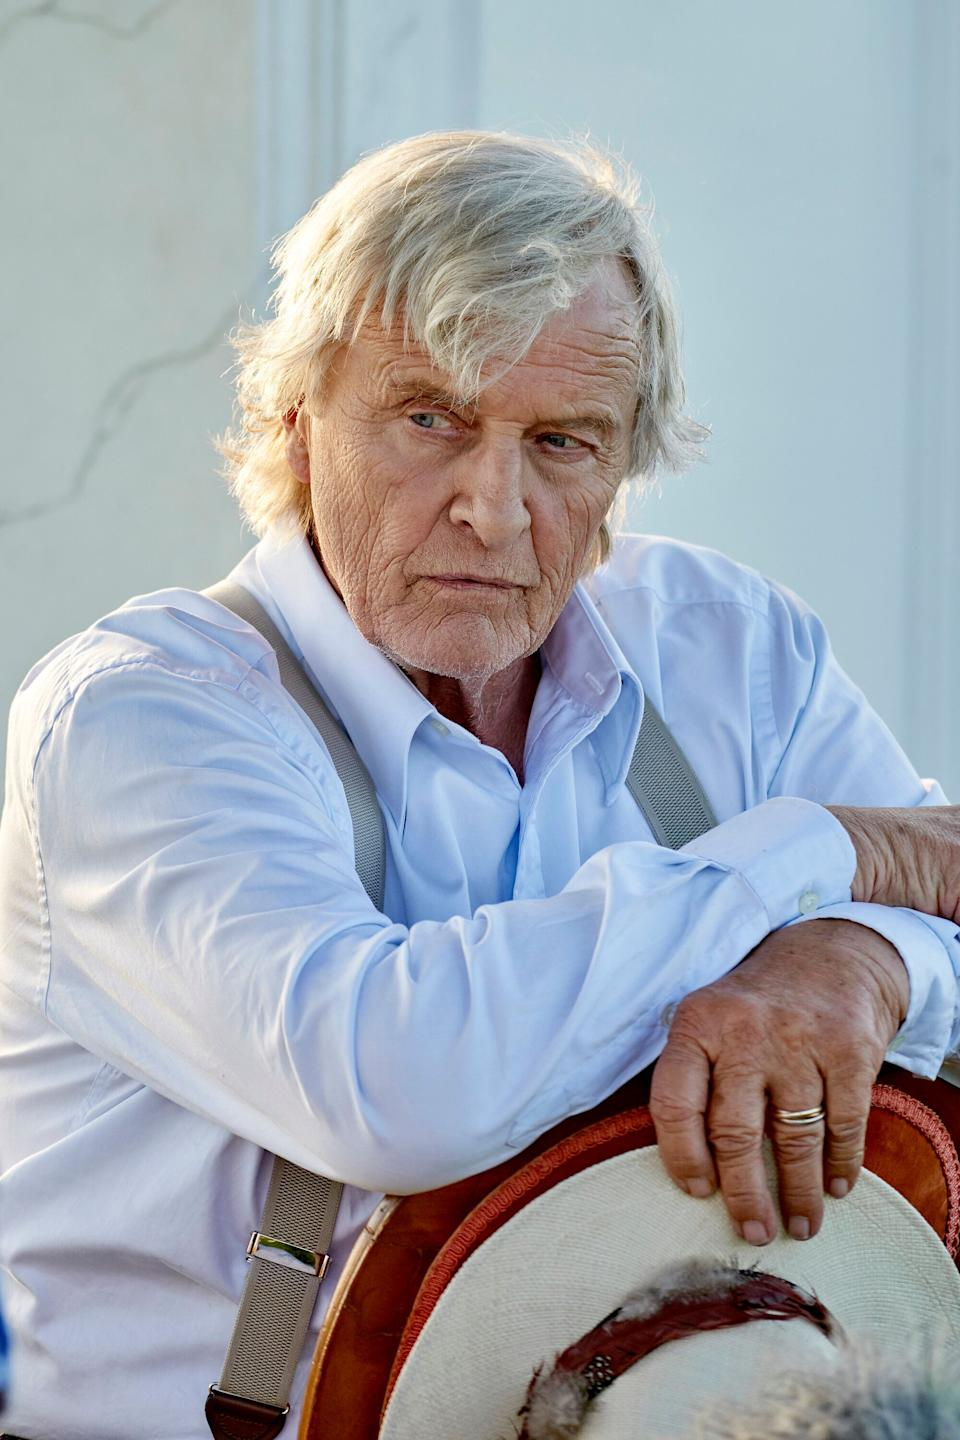 """<strong>Rutger Hauer (1944-2019)</strong><br />The veteran actor featured in many films and TV shows over the years, but remains best-known for playing Roy Batty in Blade Runner, delivering the """"tears in the rain"""" speech."""